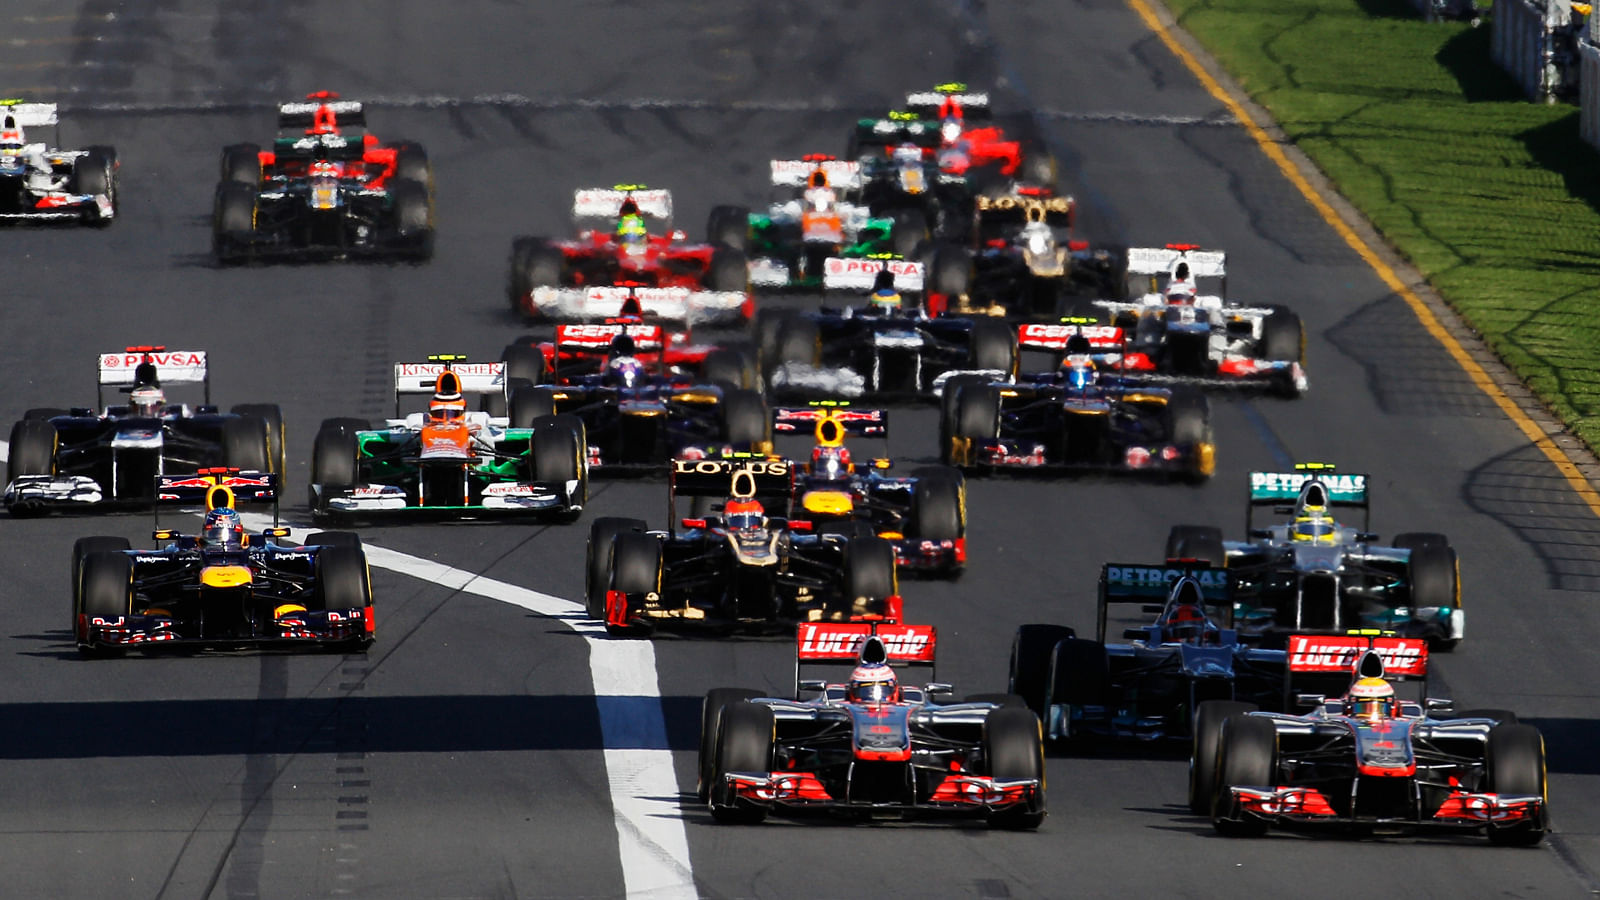 Constructor Standings Of The 2015 Formula One Season